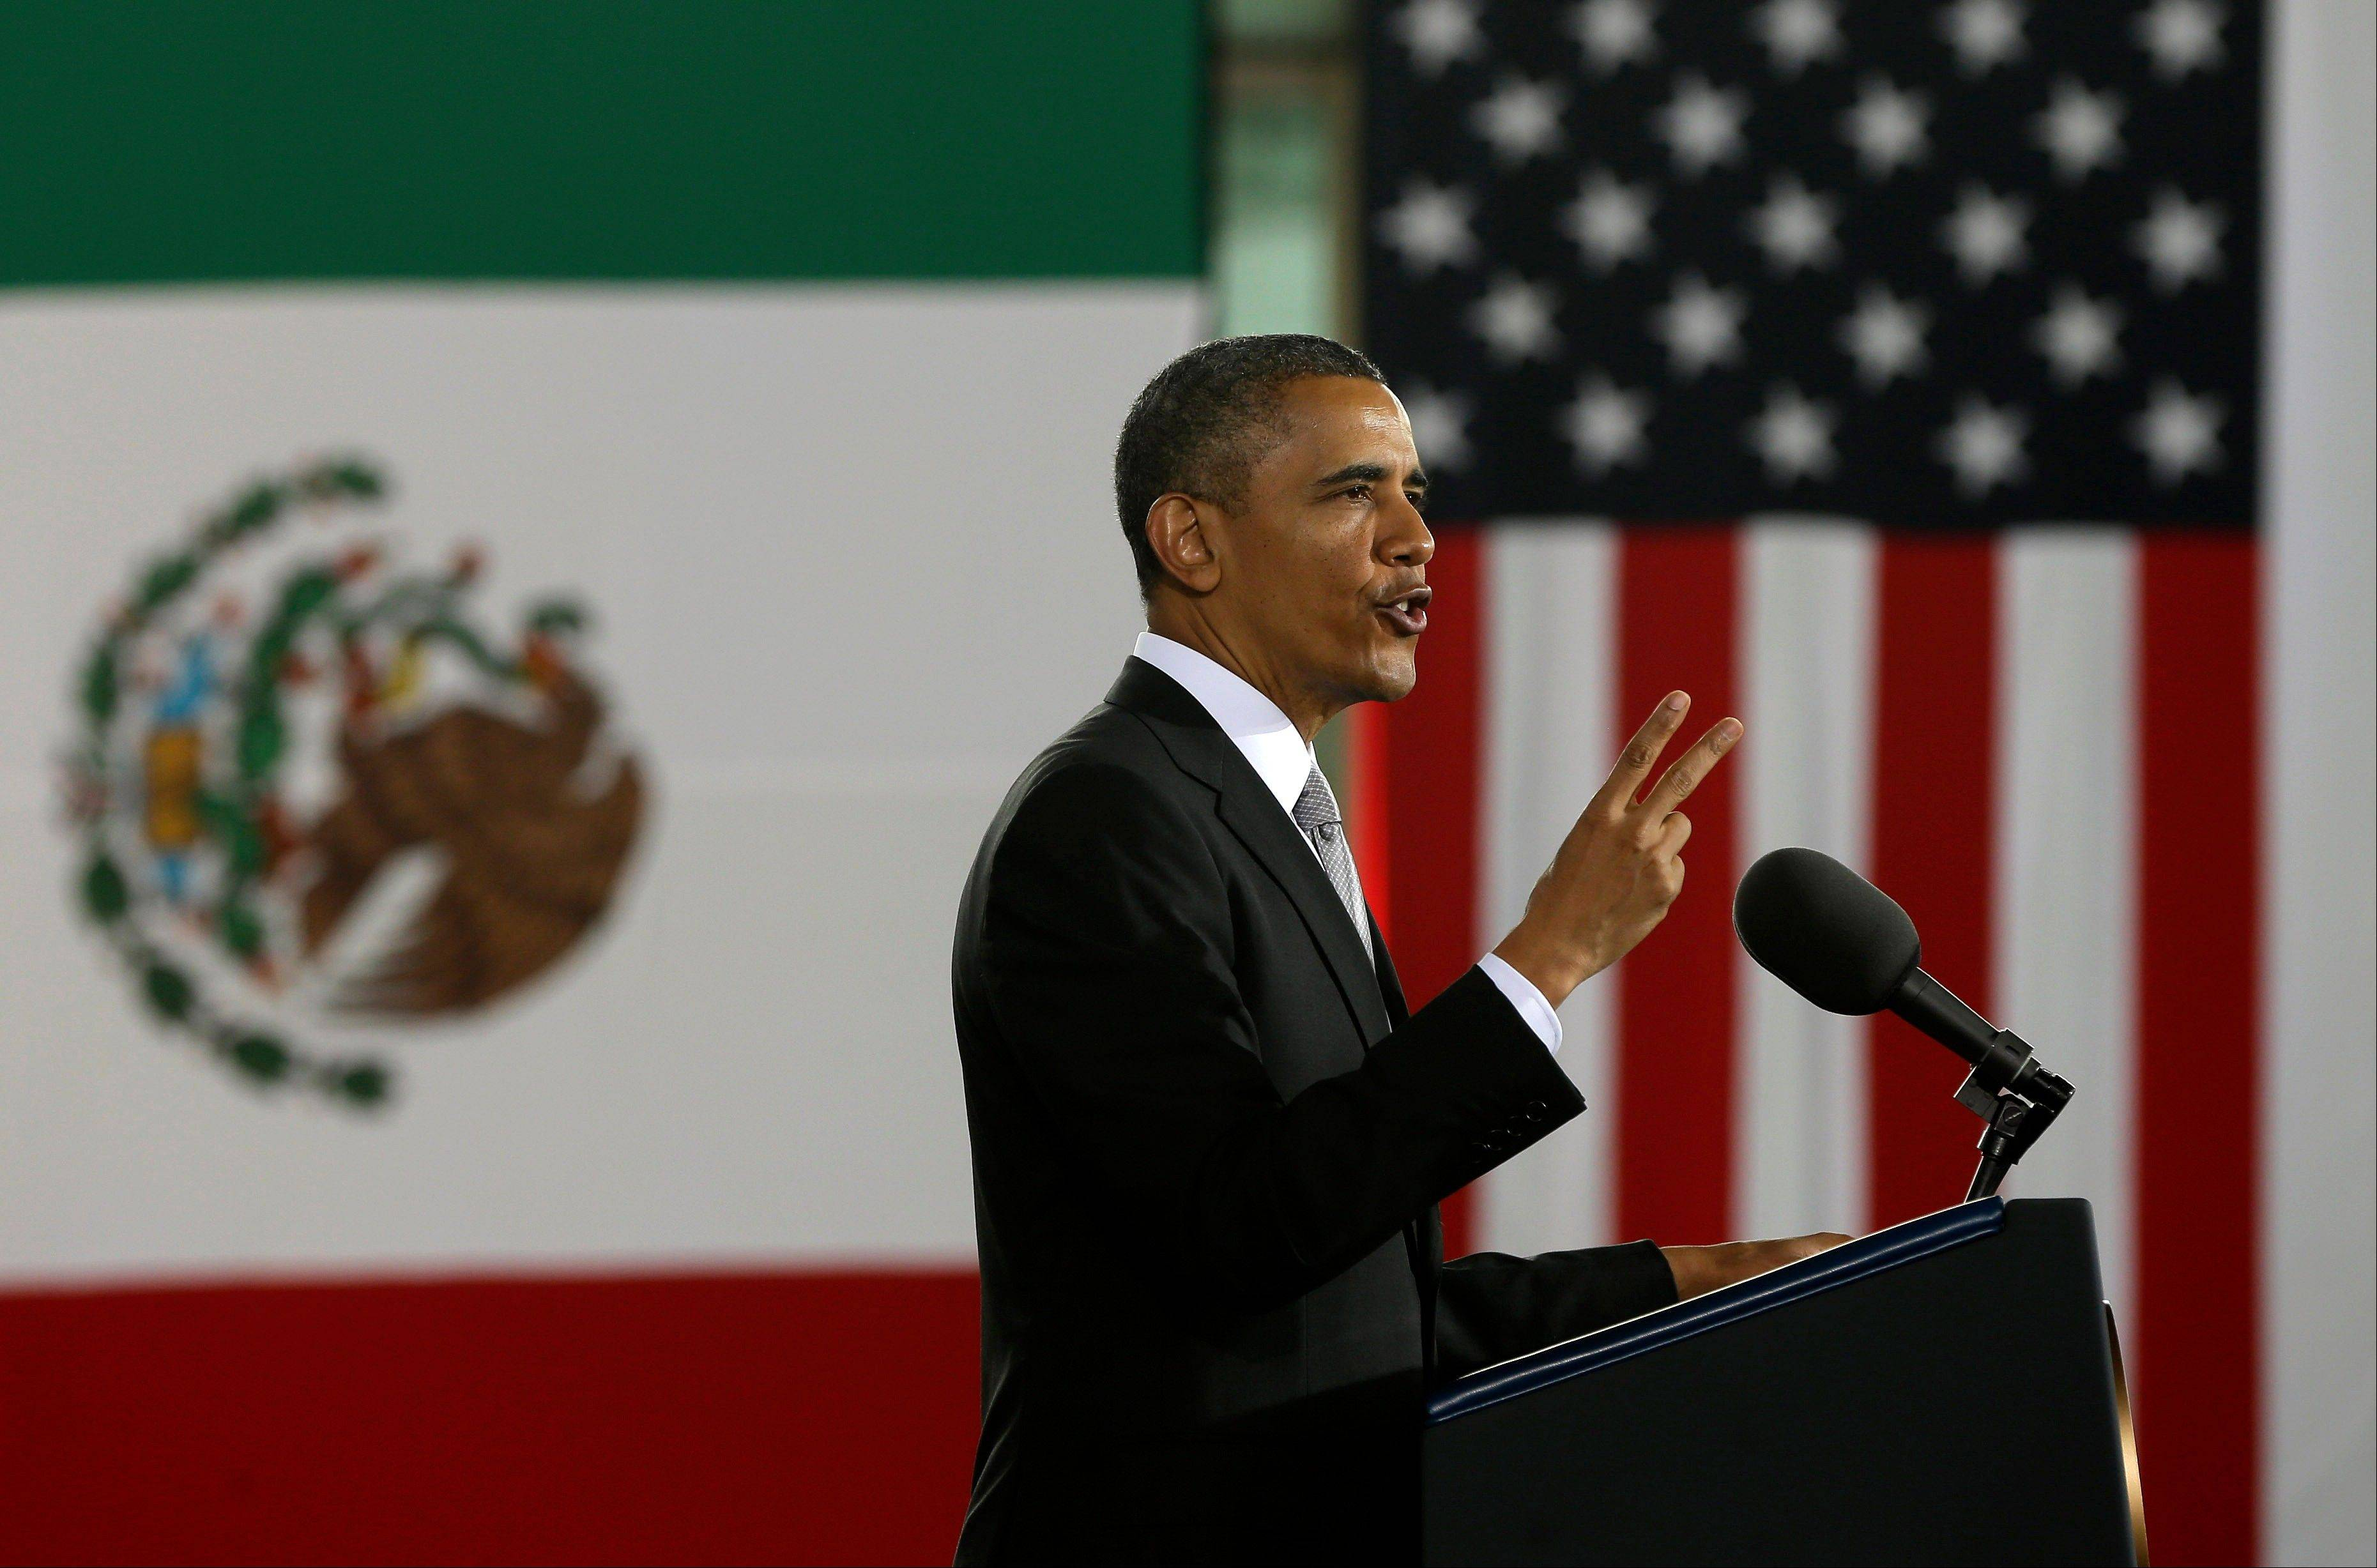 President Barack Obama speaks at the Anthropology Museum in Mexico City, Friday, May 3, 2013.